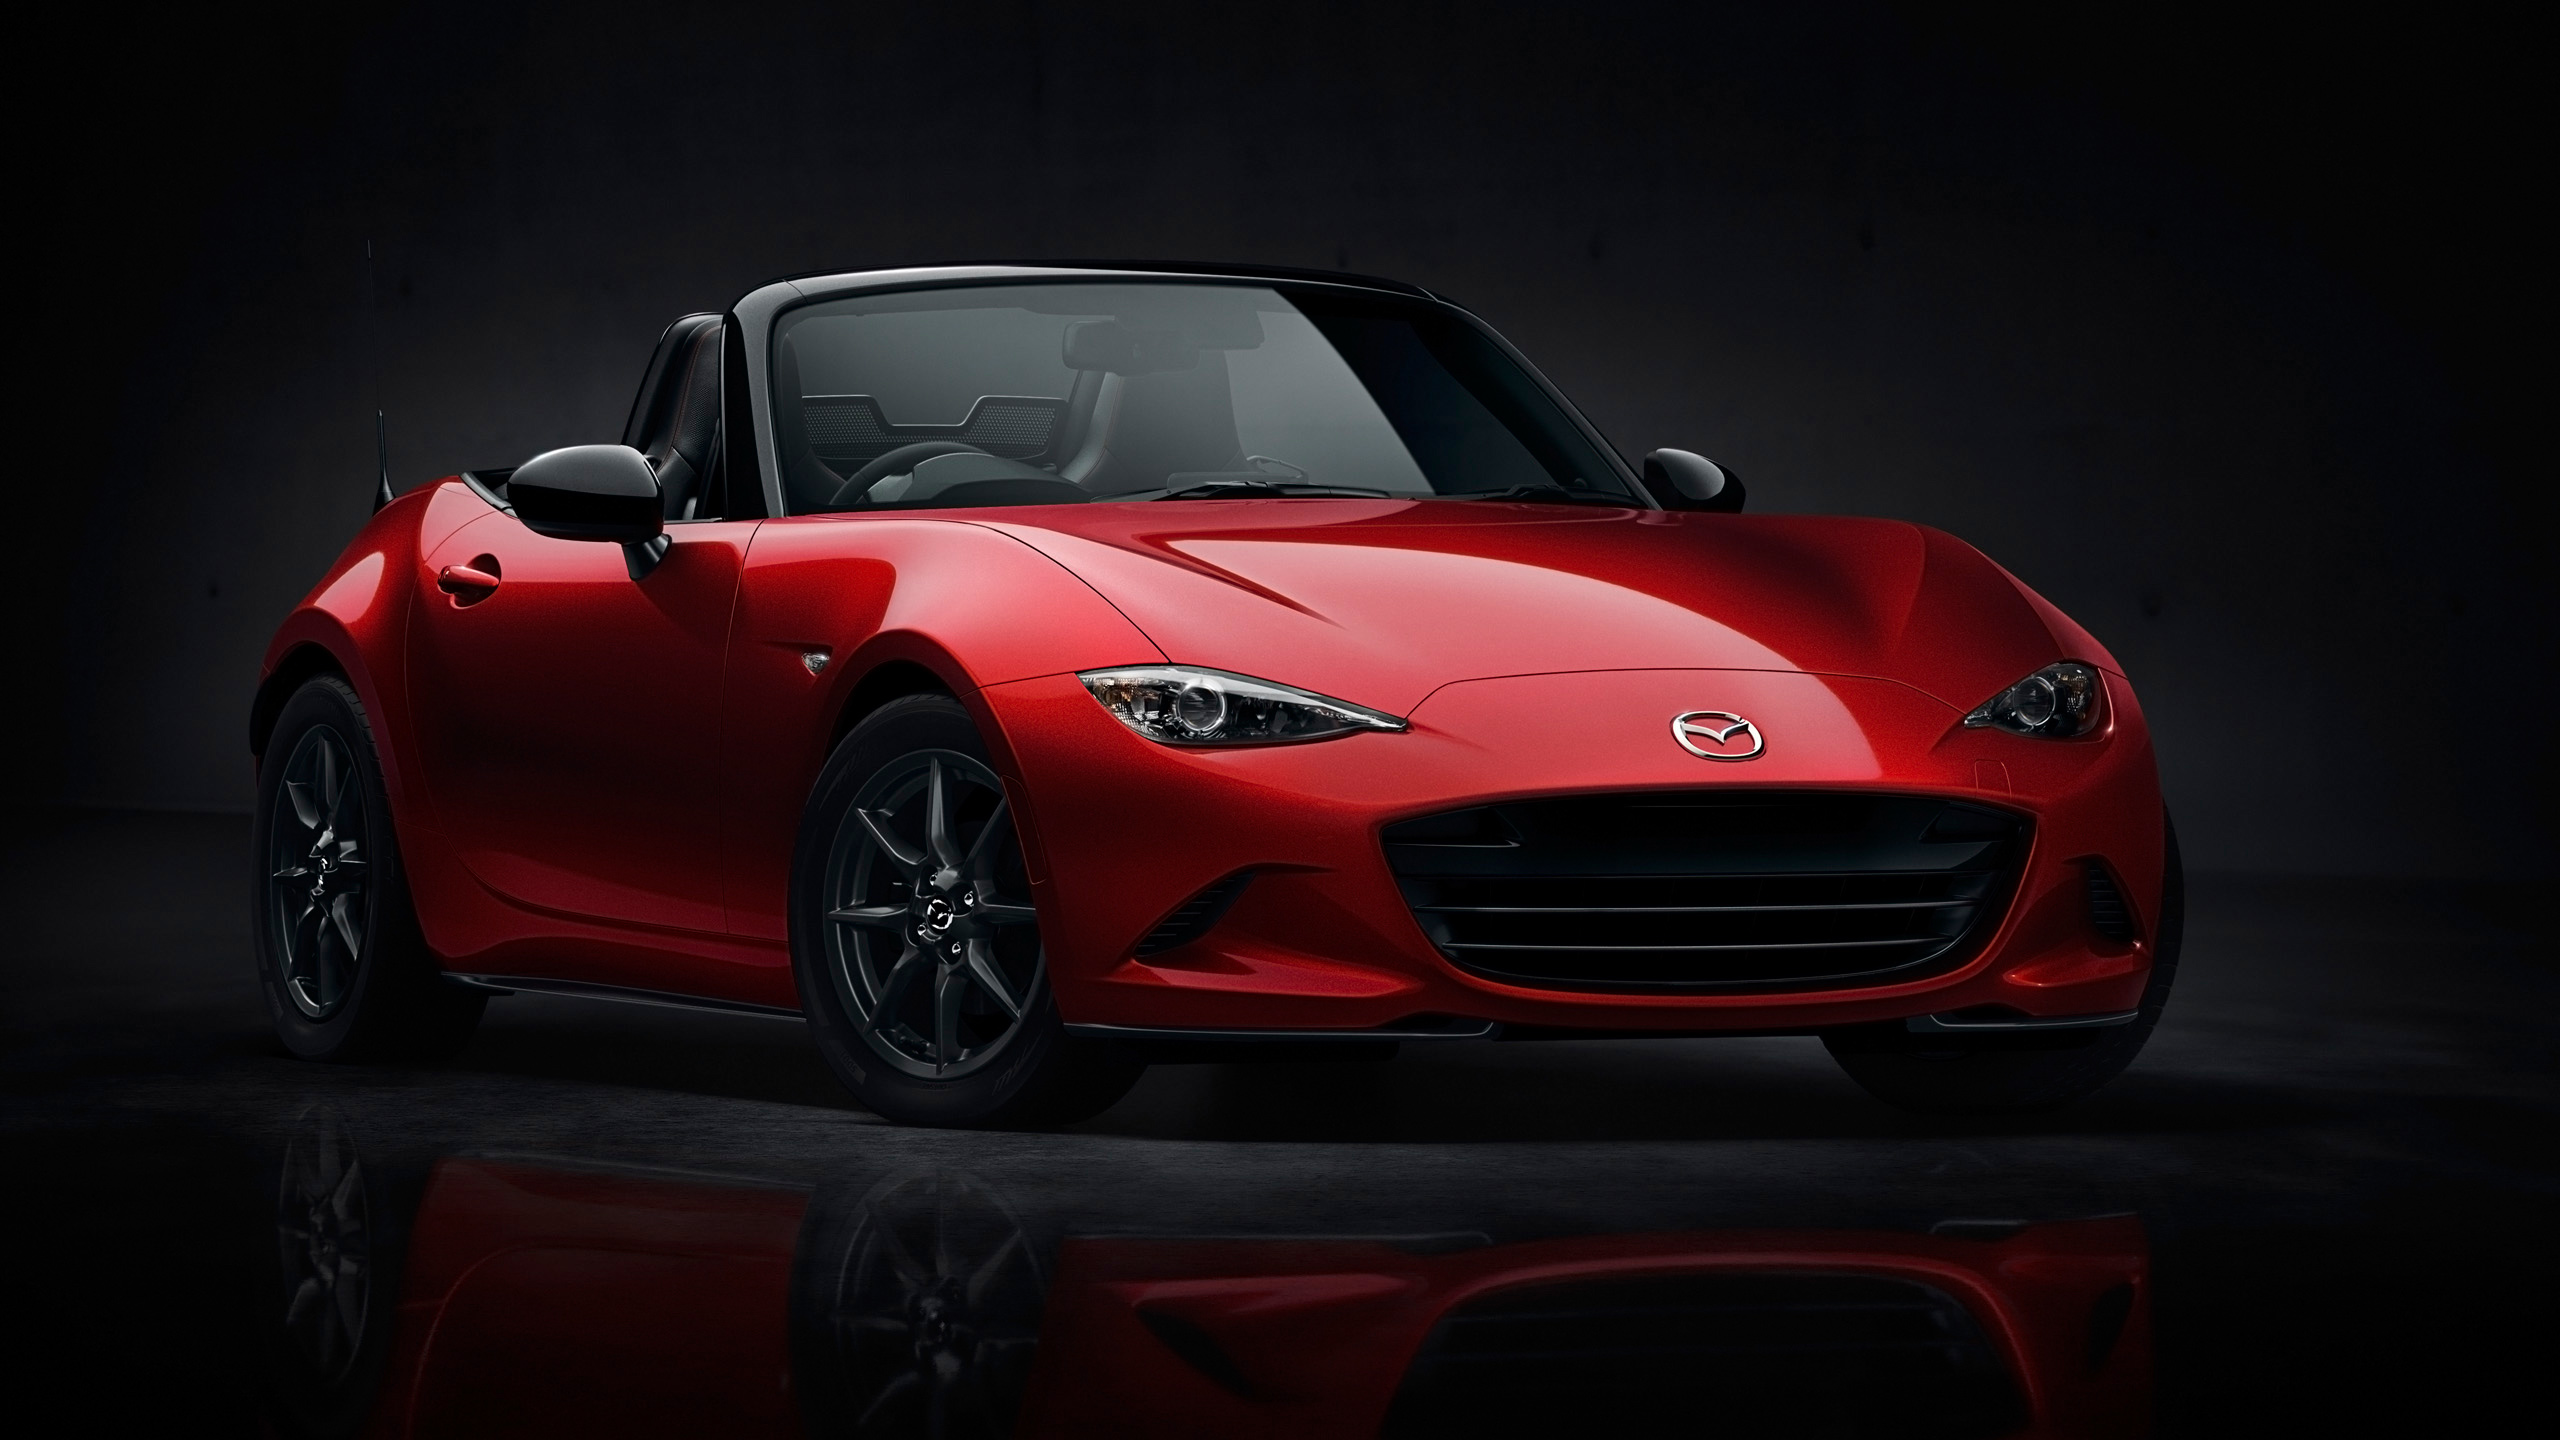 2016 Mazda MX 5 Miata Wallpaper | HD